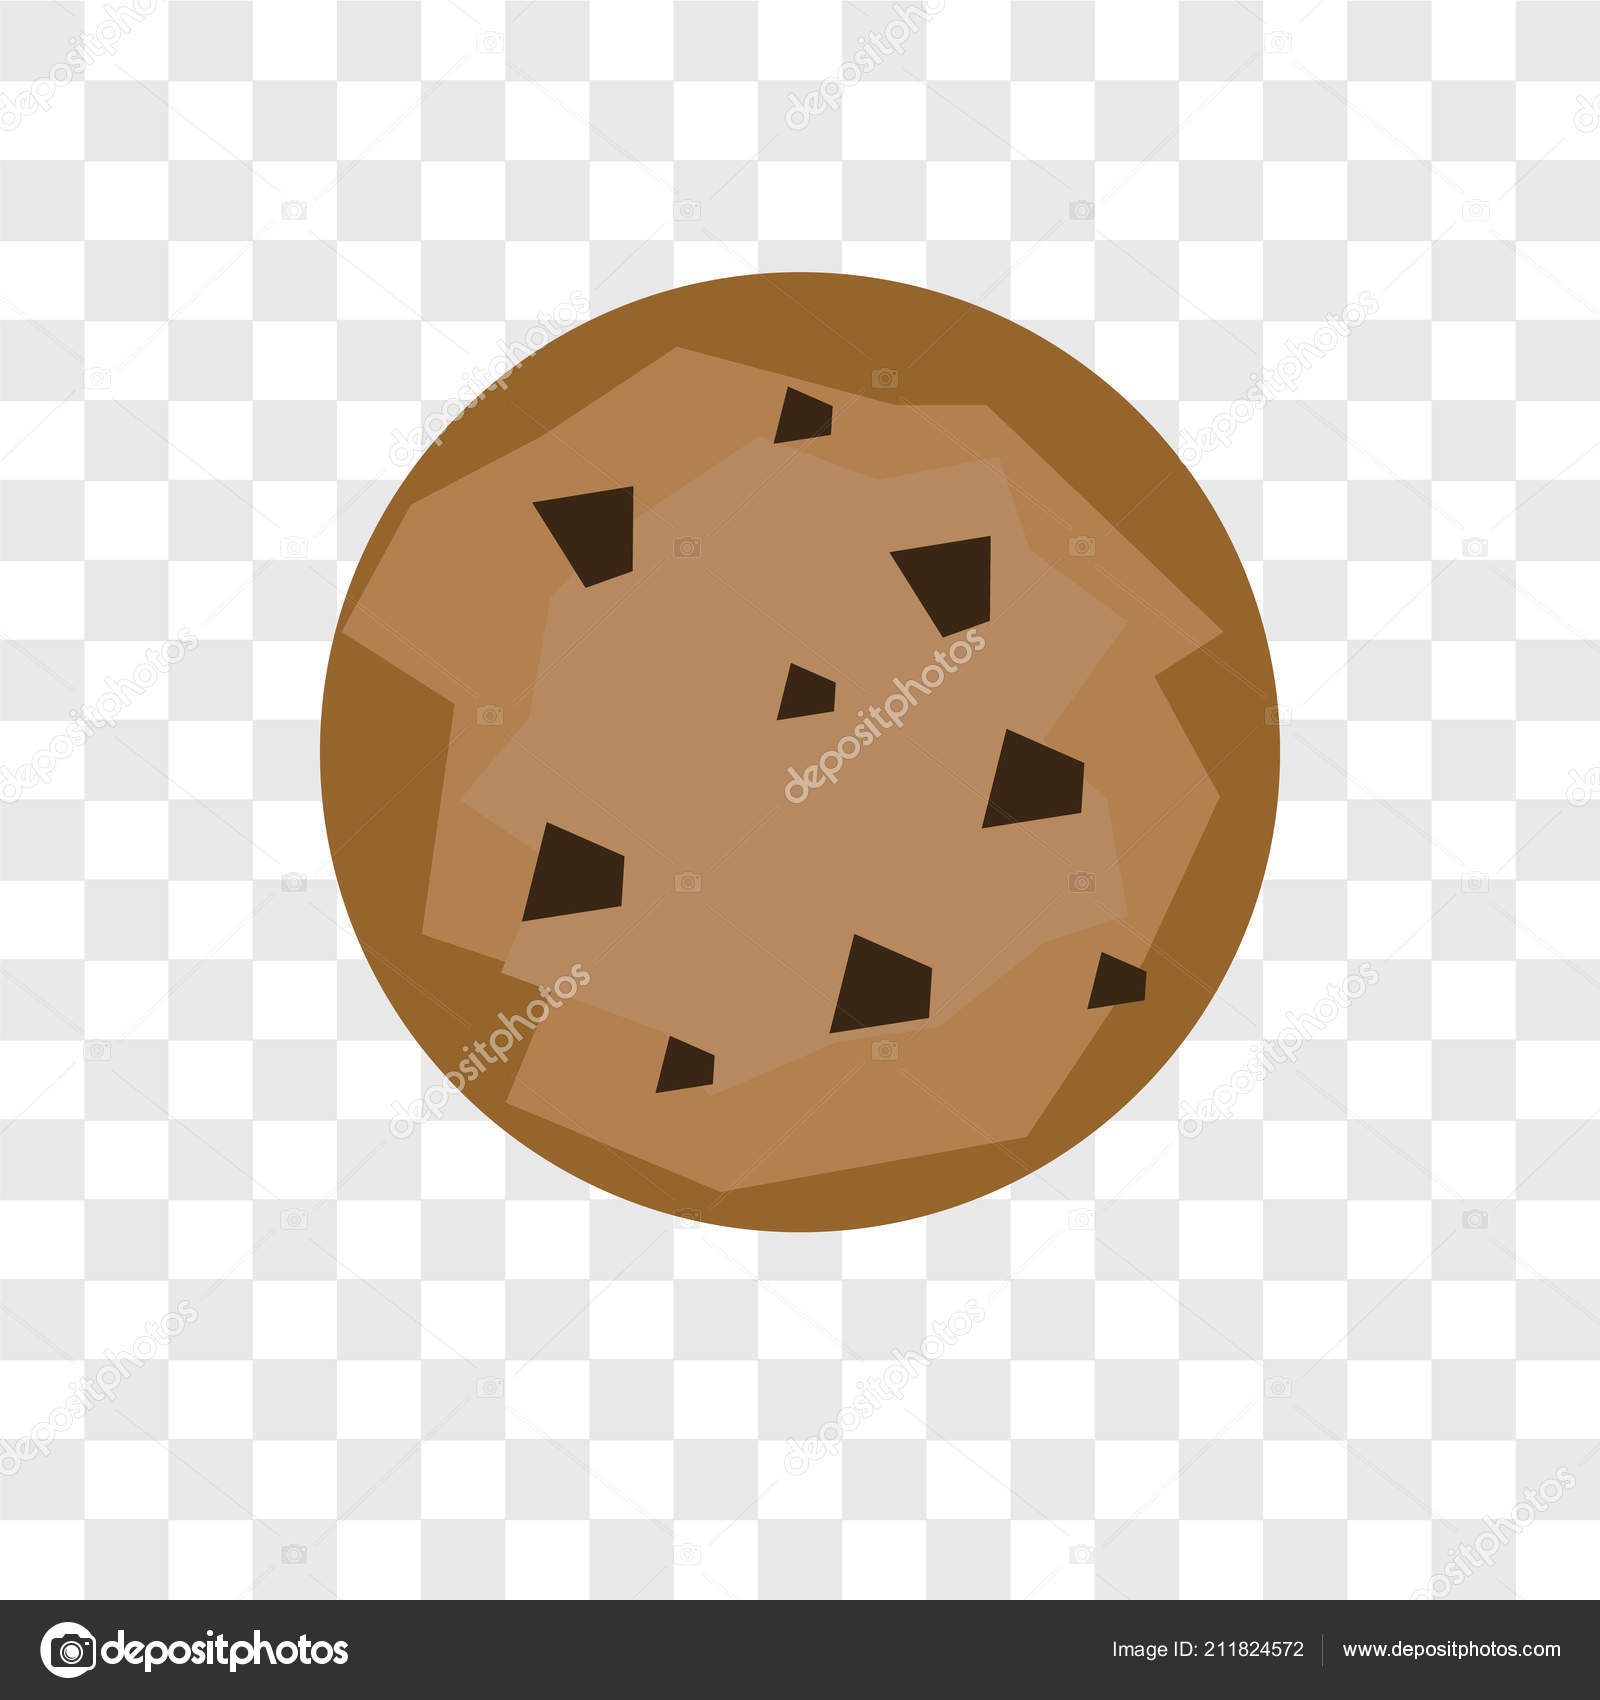 biscuit logo transparent biscuit vector icon isolated on transparent background biscuit logo design stock vector c topvectorstock 211824572 https depositphotos com 211824572 stock illustration biscuit vector icon isolated on html